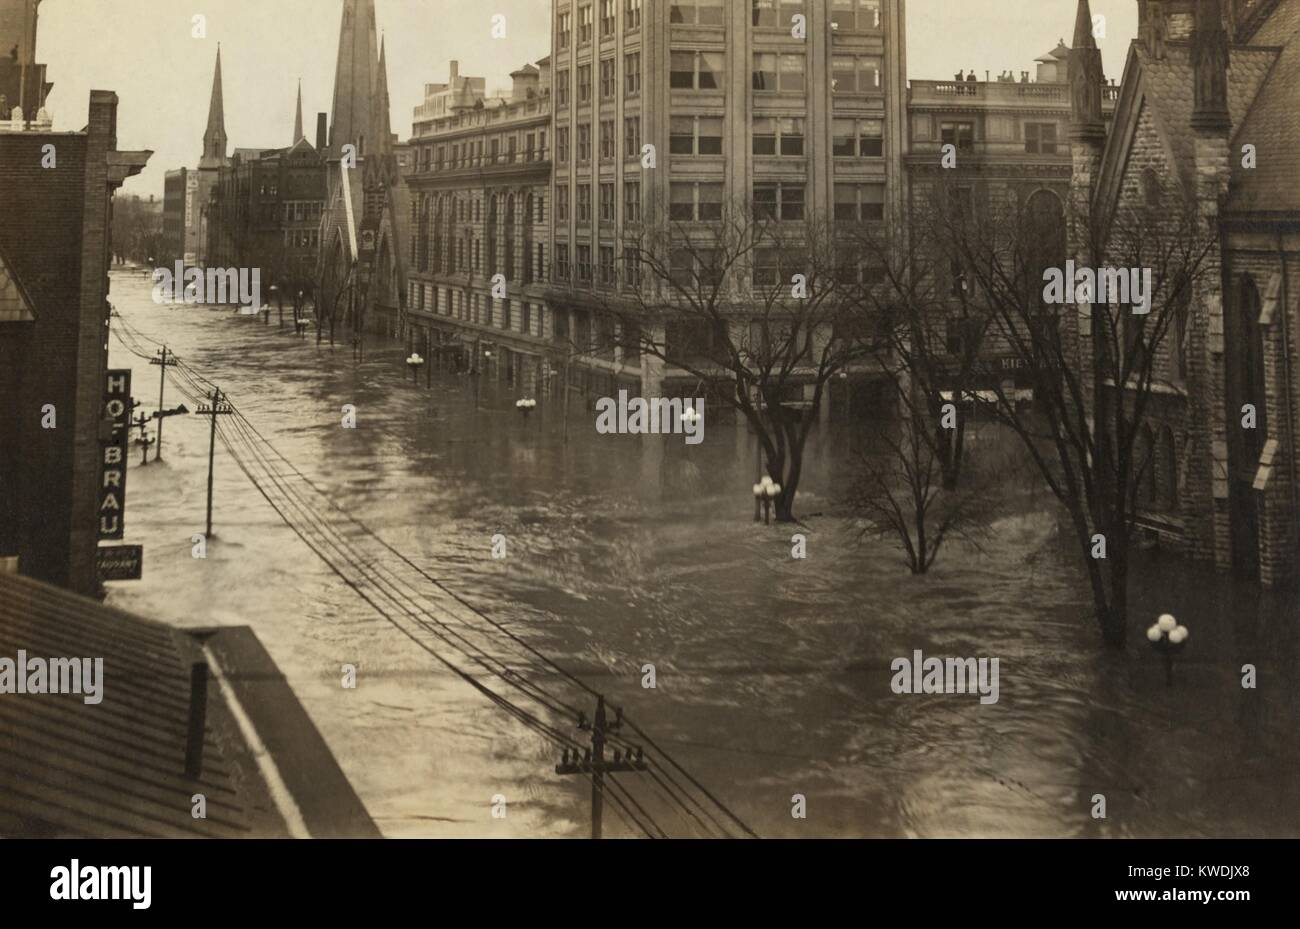 Ludlow Street in downtown Dayton, Ohio, looking north during The Great Flood of 1913. Dayton was totally devastated, - Stock Image